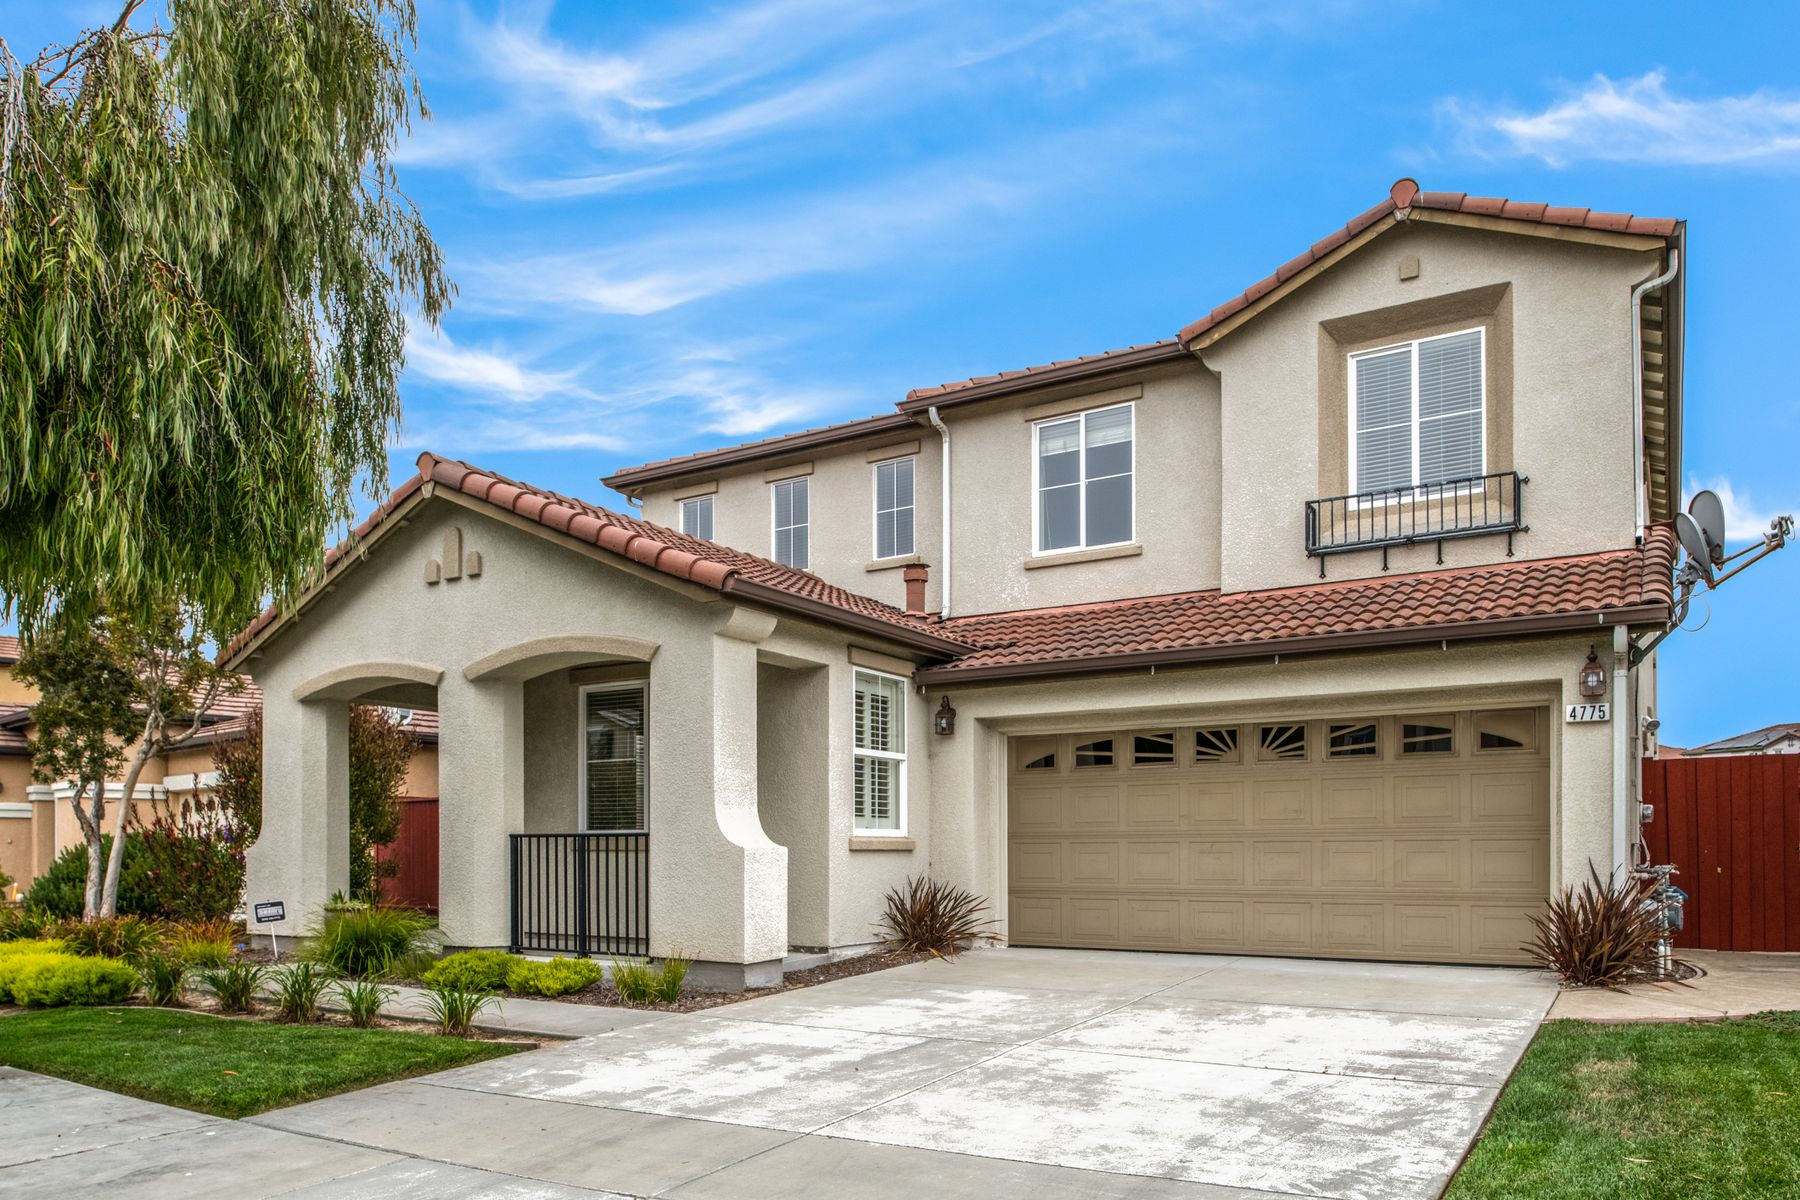 Single Family Homes for Sale at Seaside Highlands Sea Star 4775 Sea Crest Drive Seaside, California 93955 United States